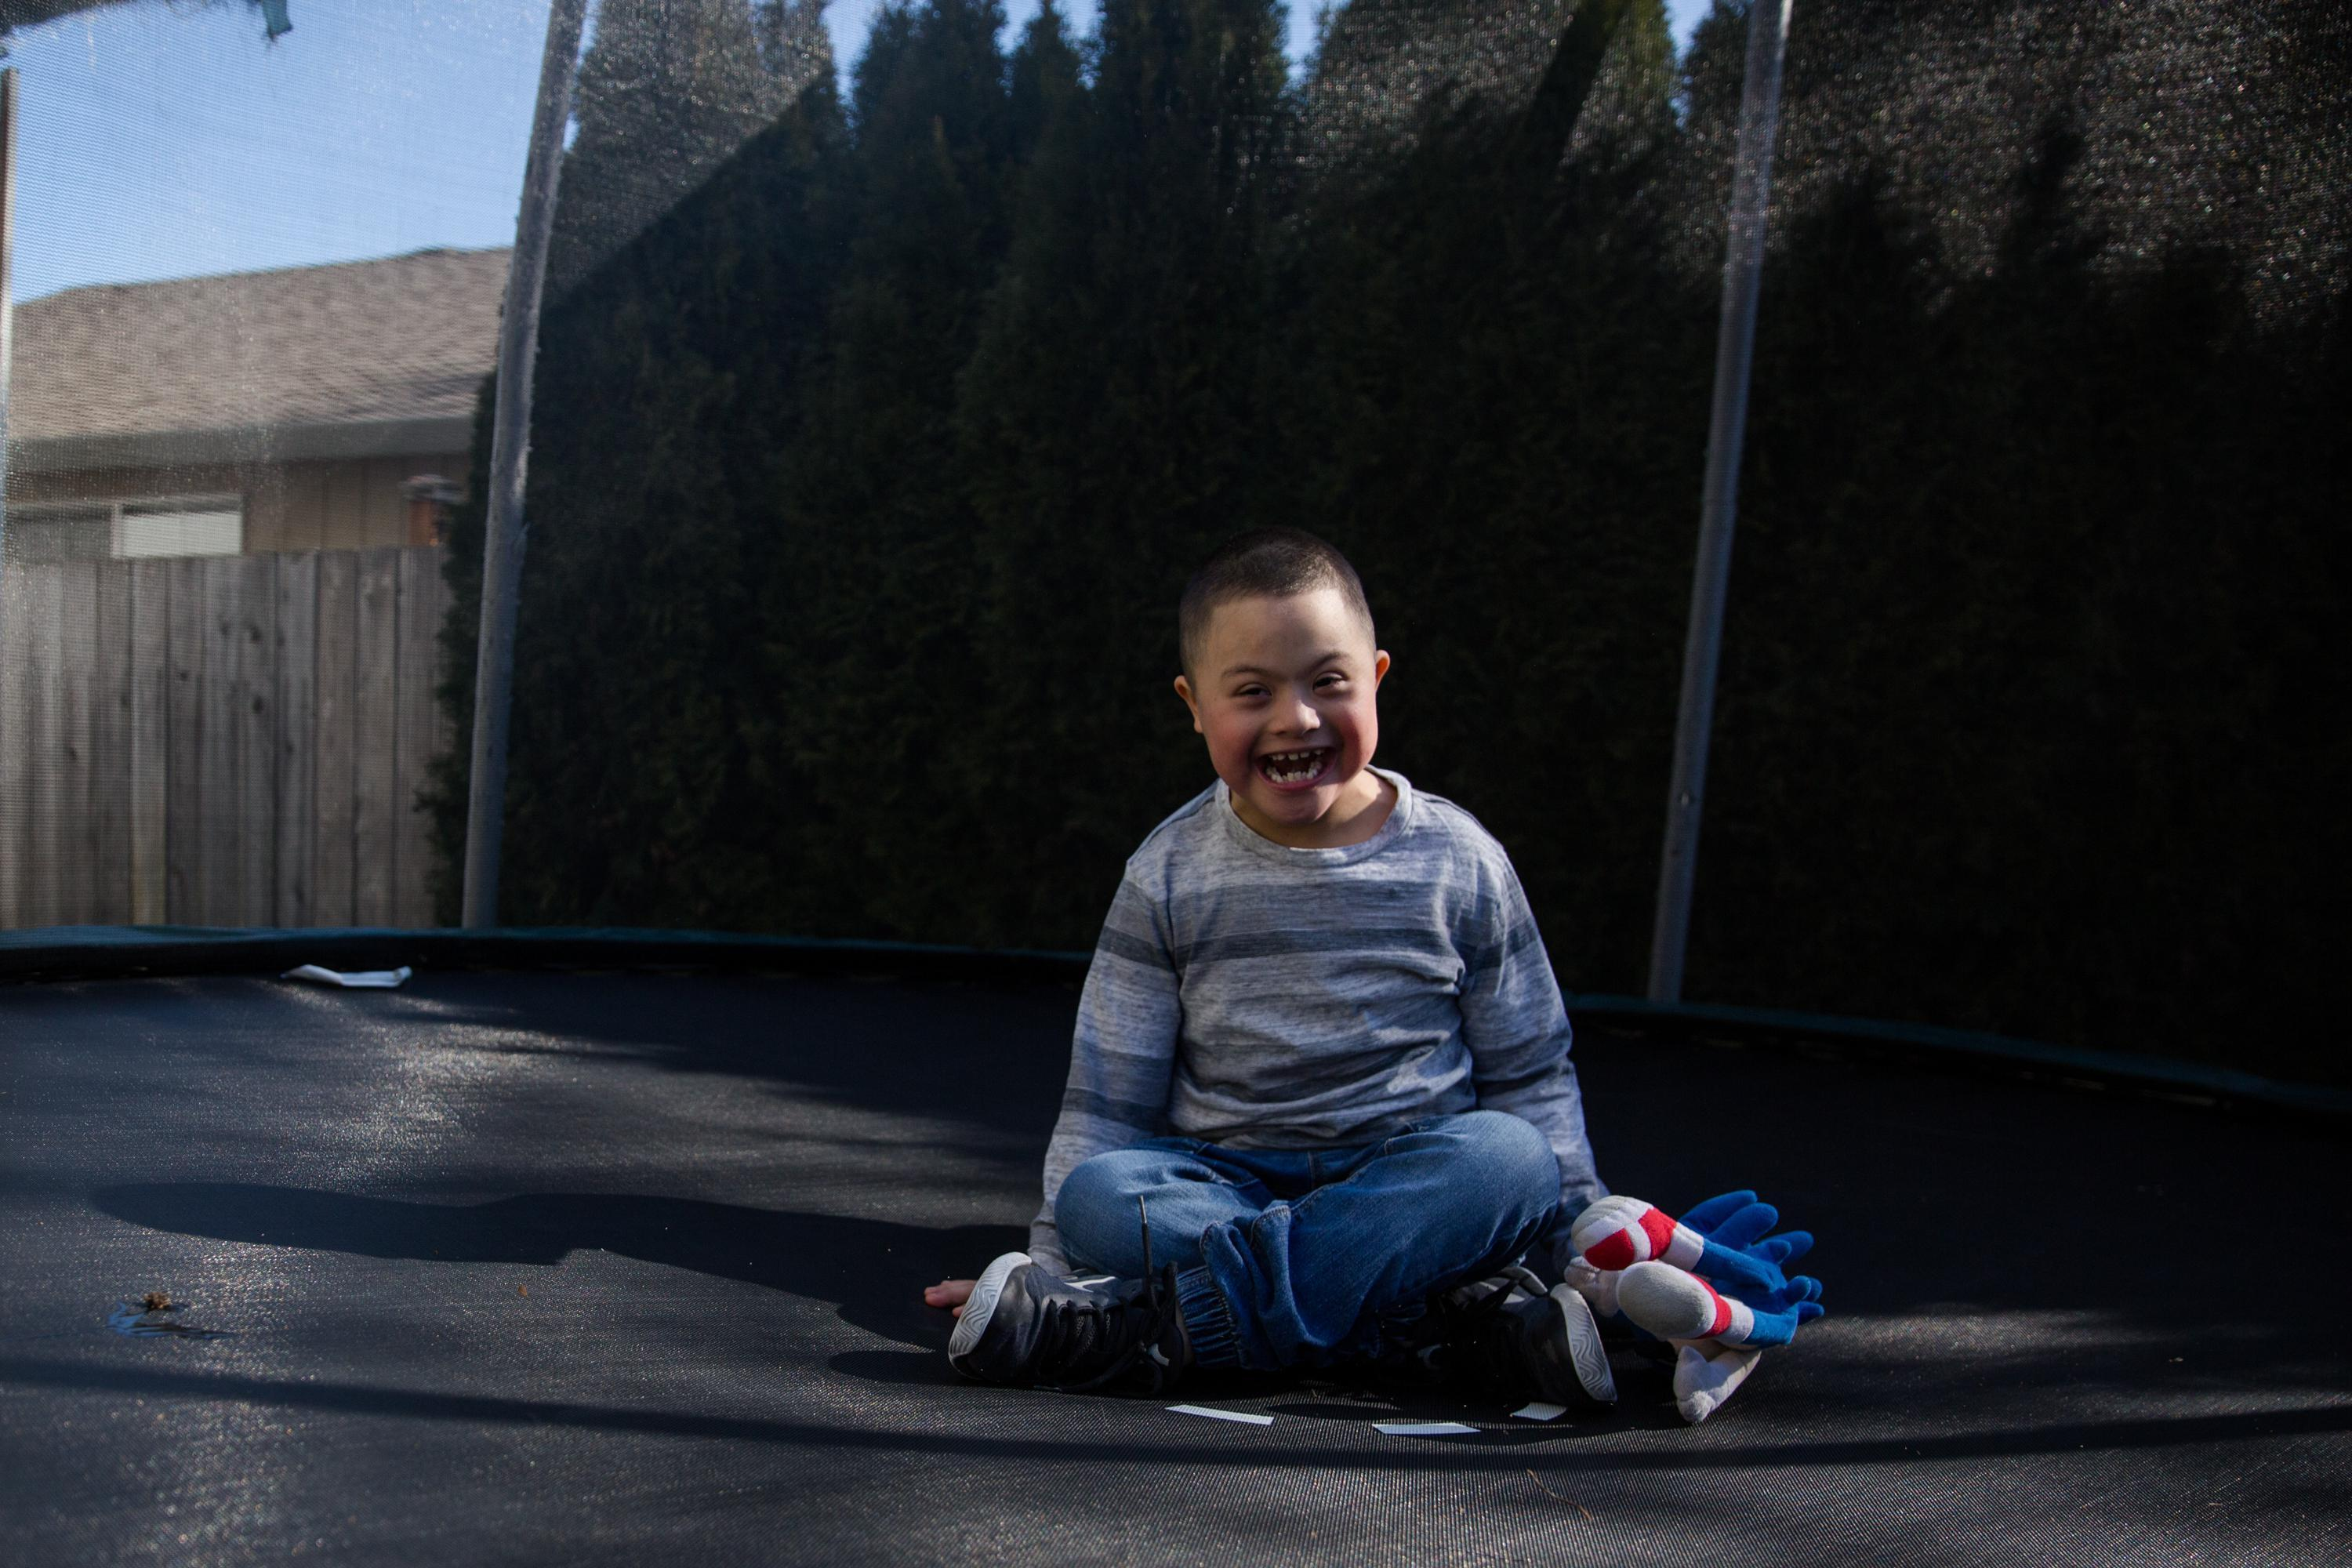 Romeo, 7, jumps on a trampoline in the backyard of his family home in Vancouver, Wash., Saturday, March 2, 2019. Romeo has Down syndrome and his family has struggled to find adequate care from schools in southwest Washington.